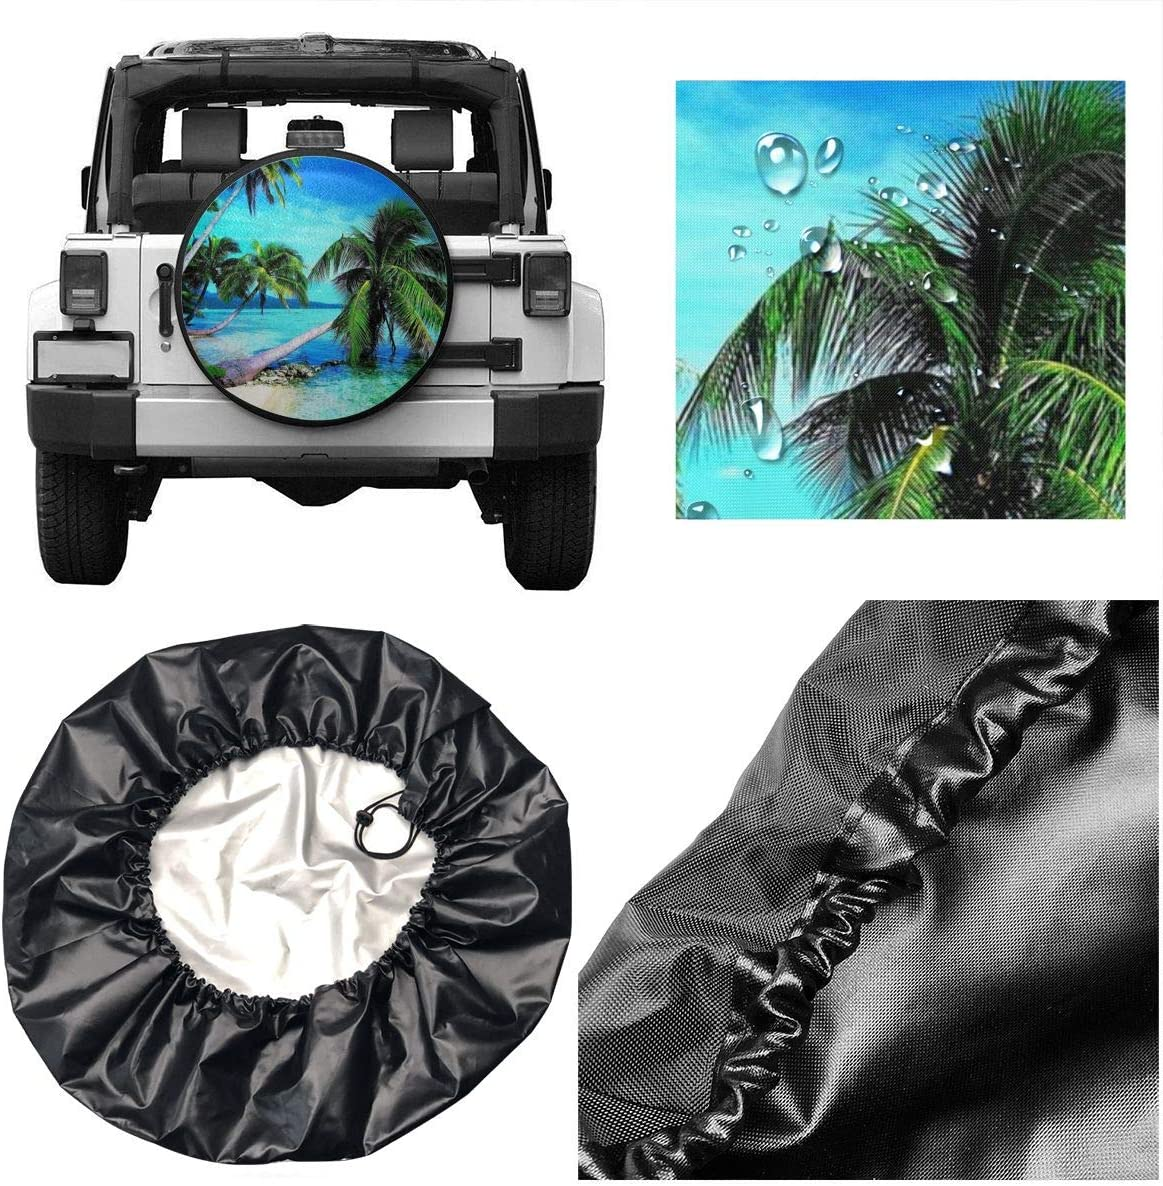 Tropical Palms Trees Navy Blue Ocean Beach Leader Accessories Spare Tire Cover,Waterproof Dust-Proof Fit 23-32 Inches